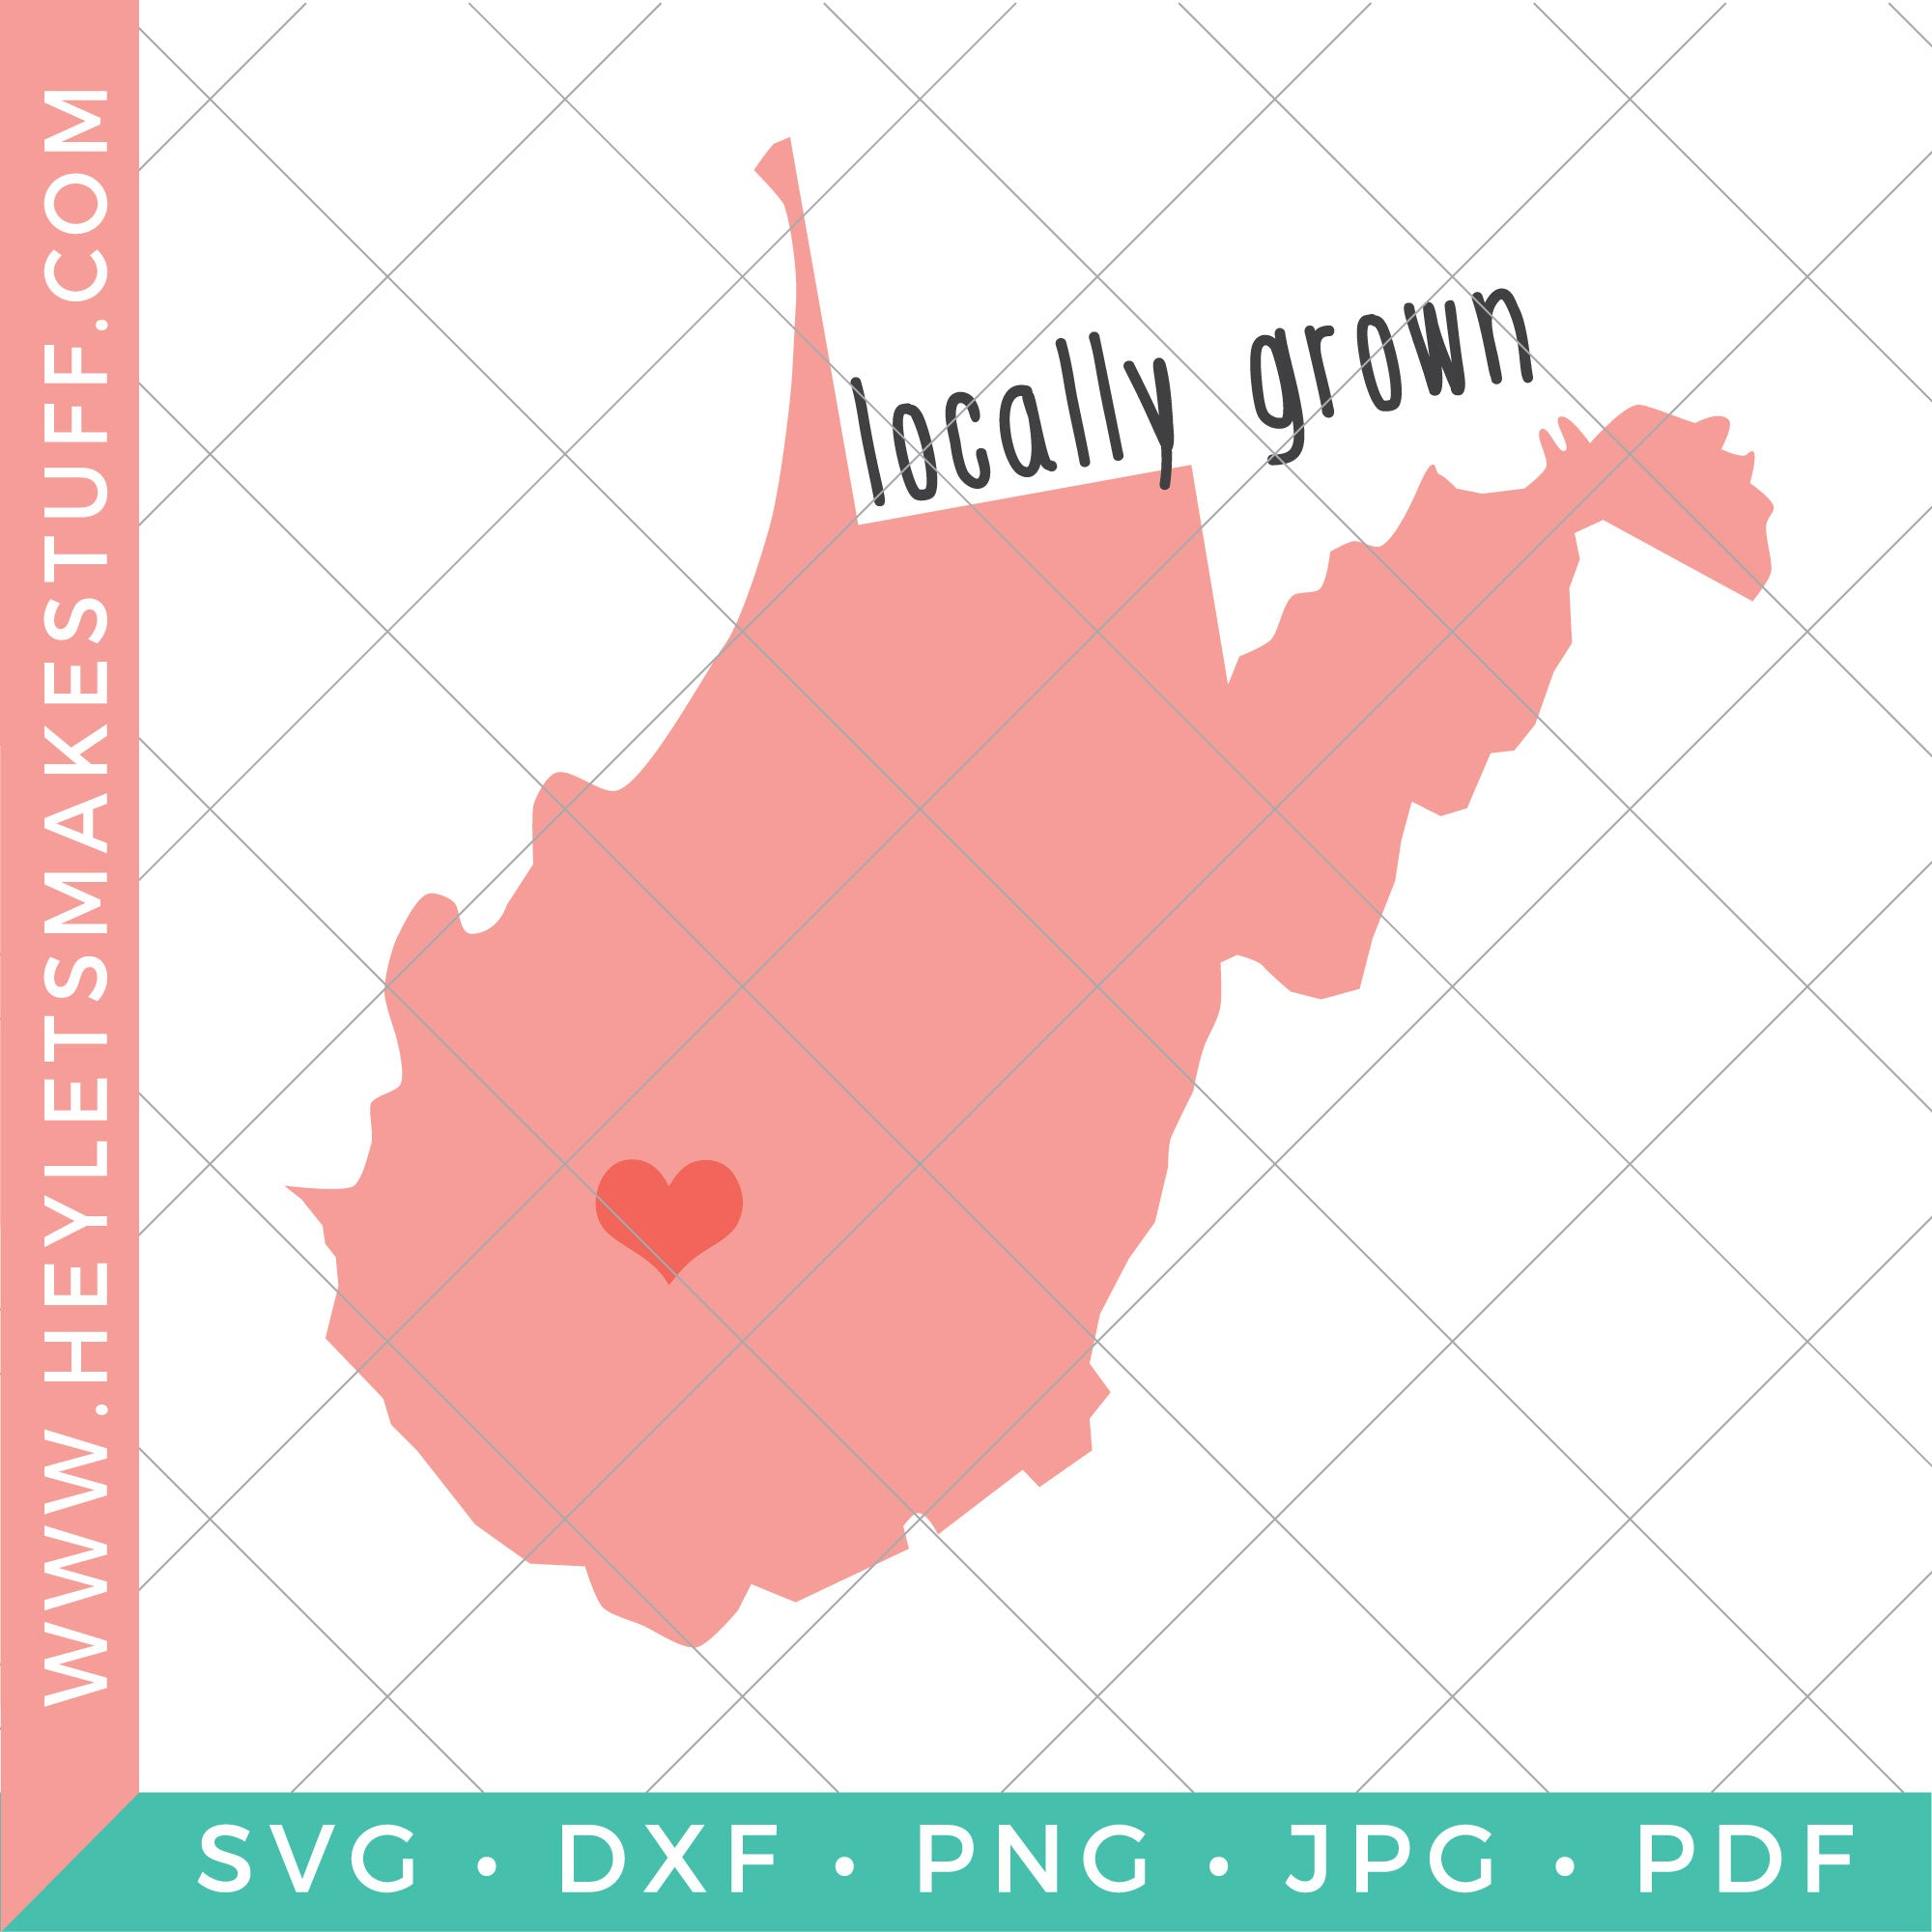 Locally Grown - West Virginia